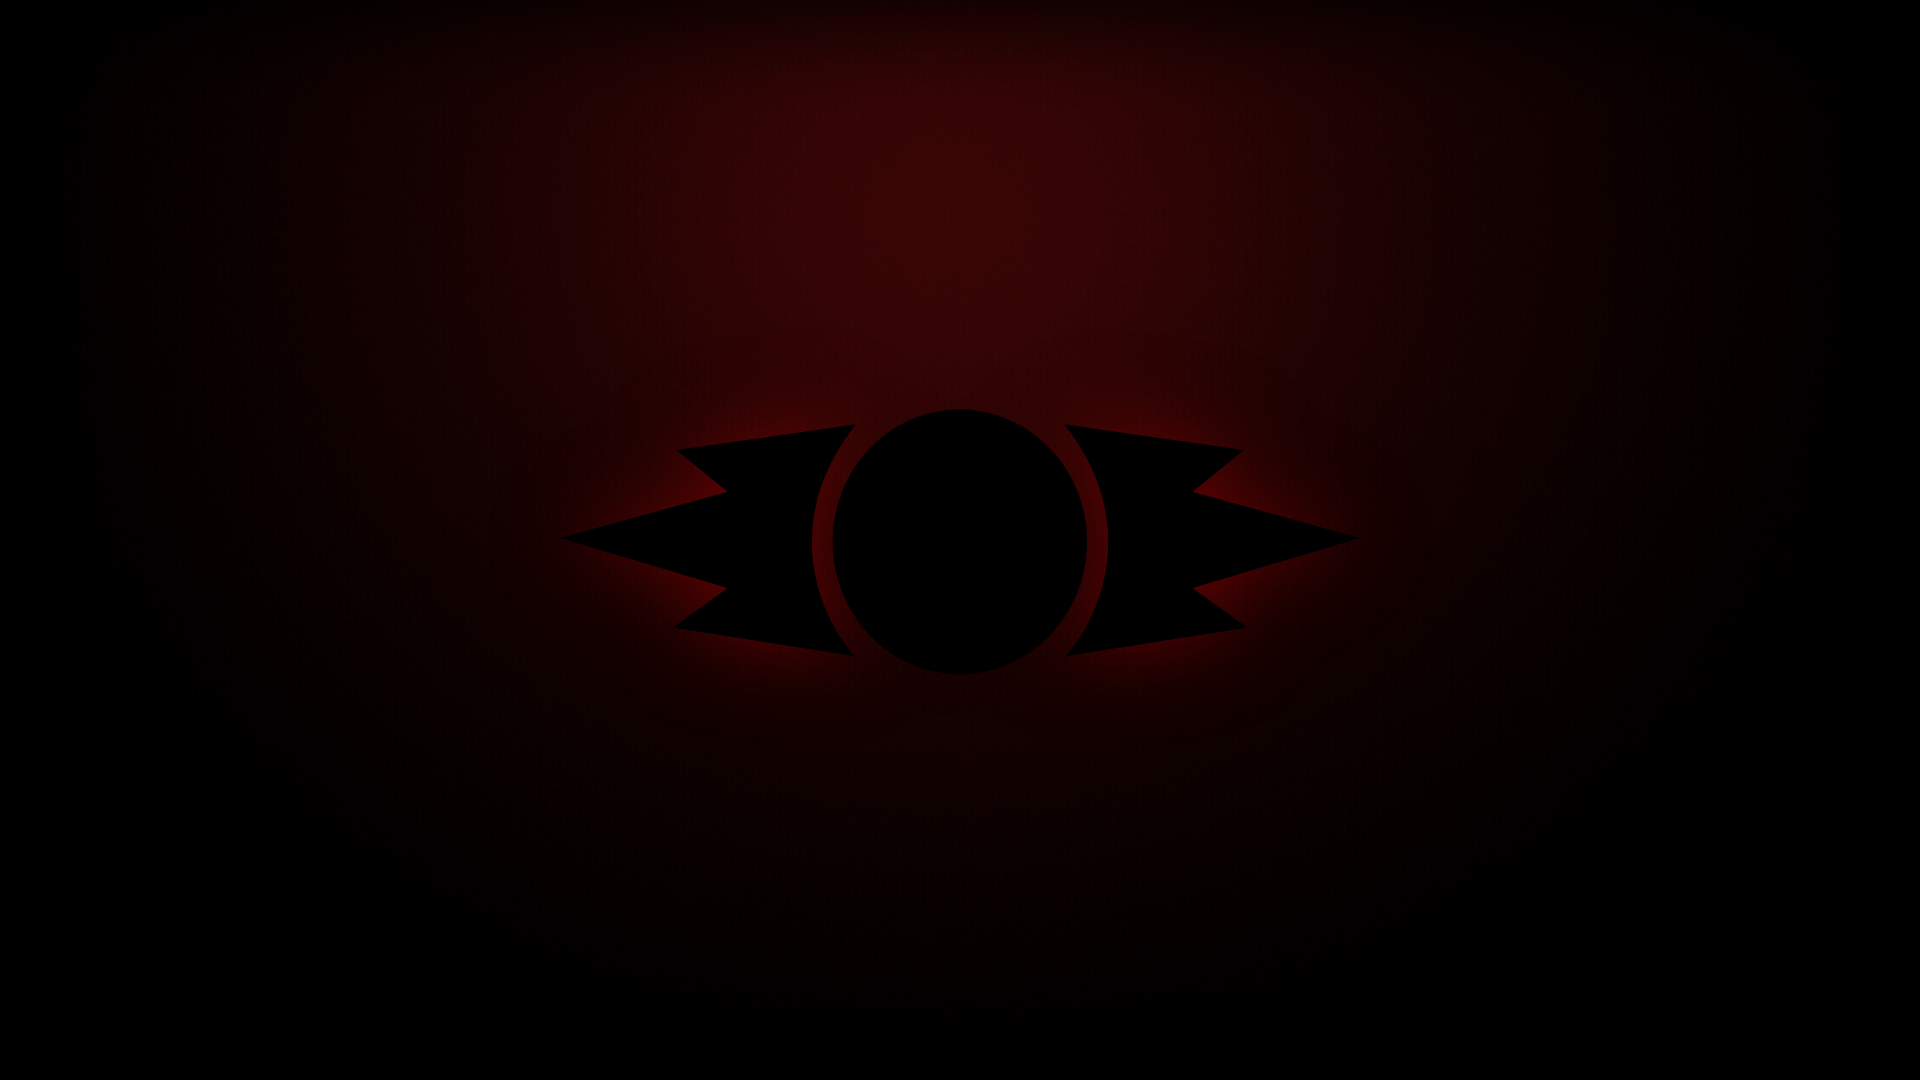 wallpaper you guys might like The Jedi Order emblem Ill do a Sith 1920x1080